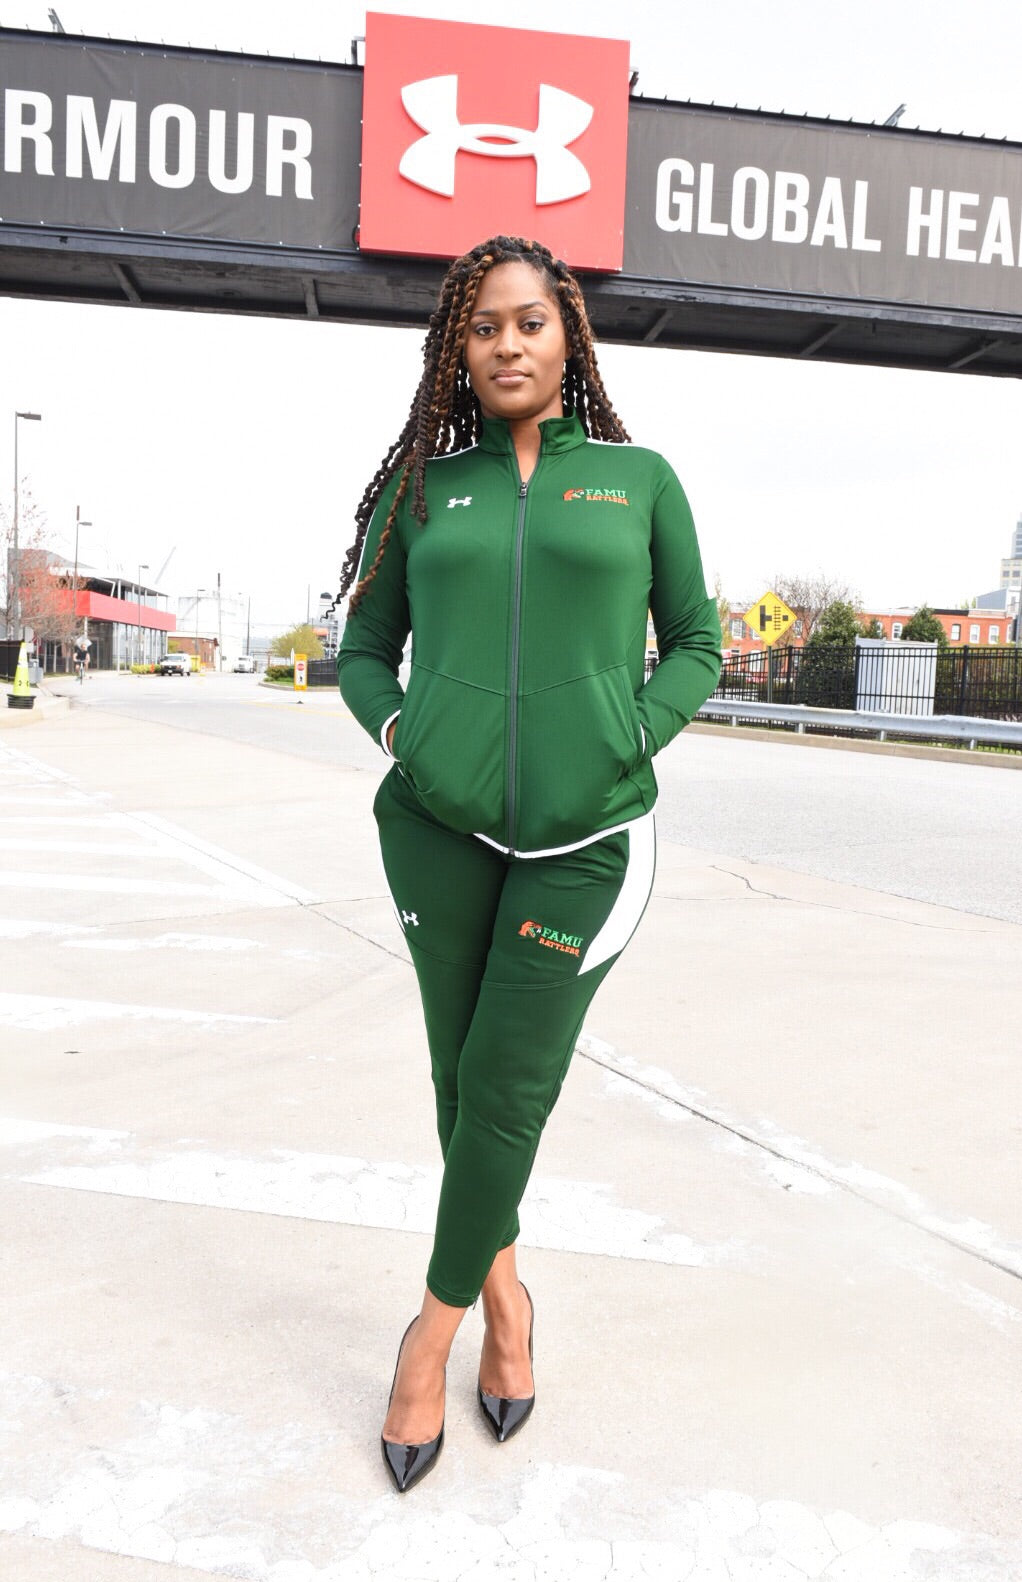 Women's Under Armour X FAMU Track Pants